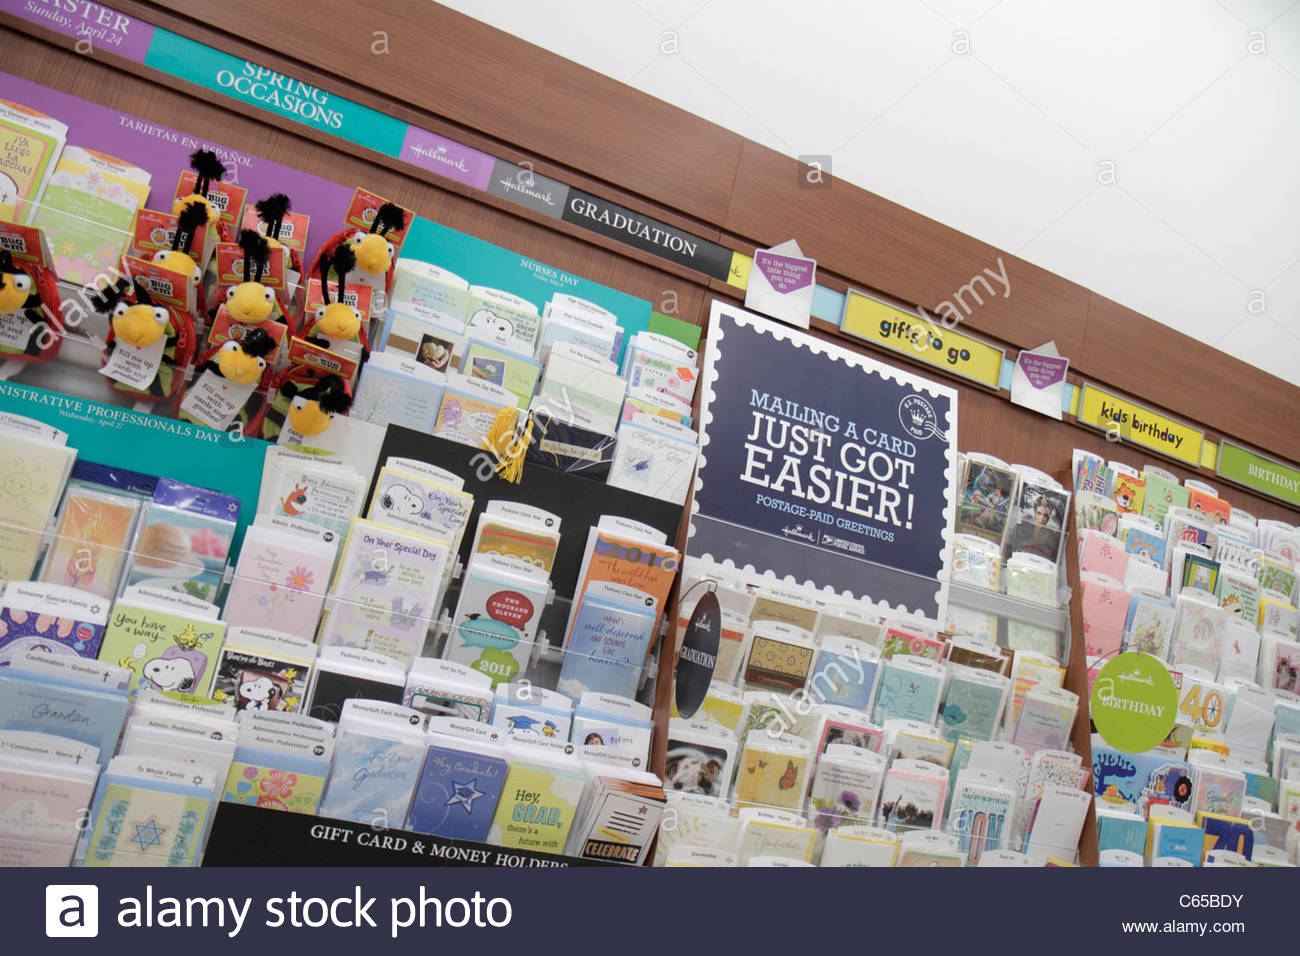 Miami beach florida walgreens business drugstore chain pharmacy miami beach florida walgreens business drugstore chain pharmacy consumer goods retail display shopping greeting cards hallmark reheart Image collections